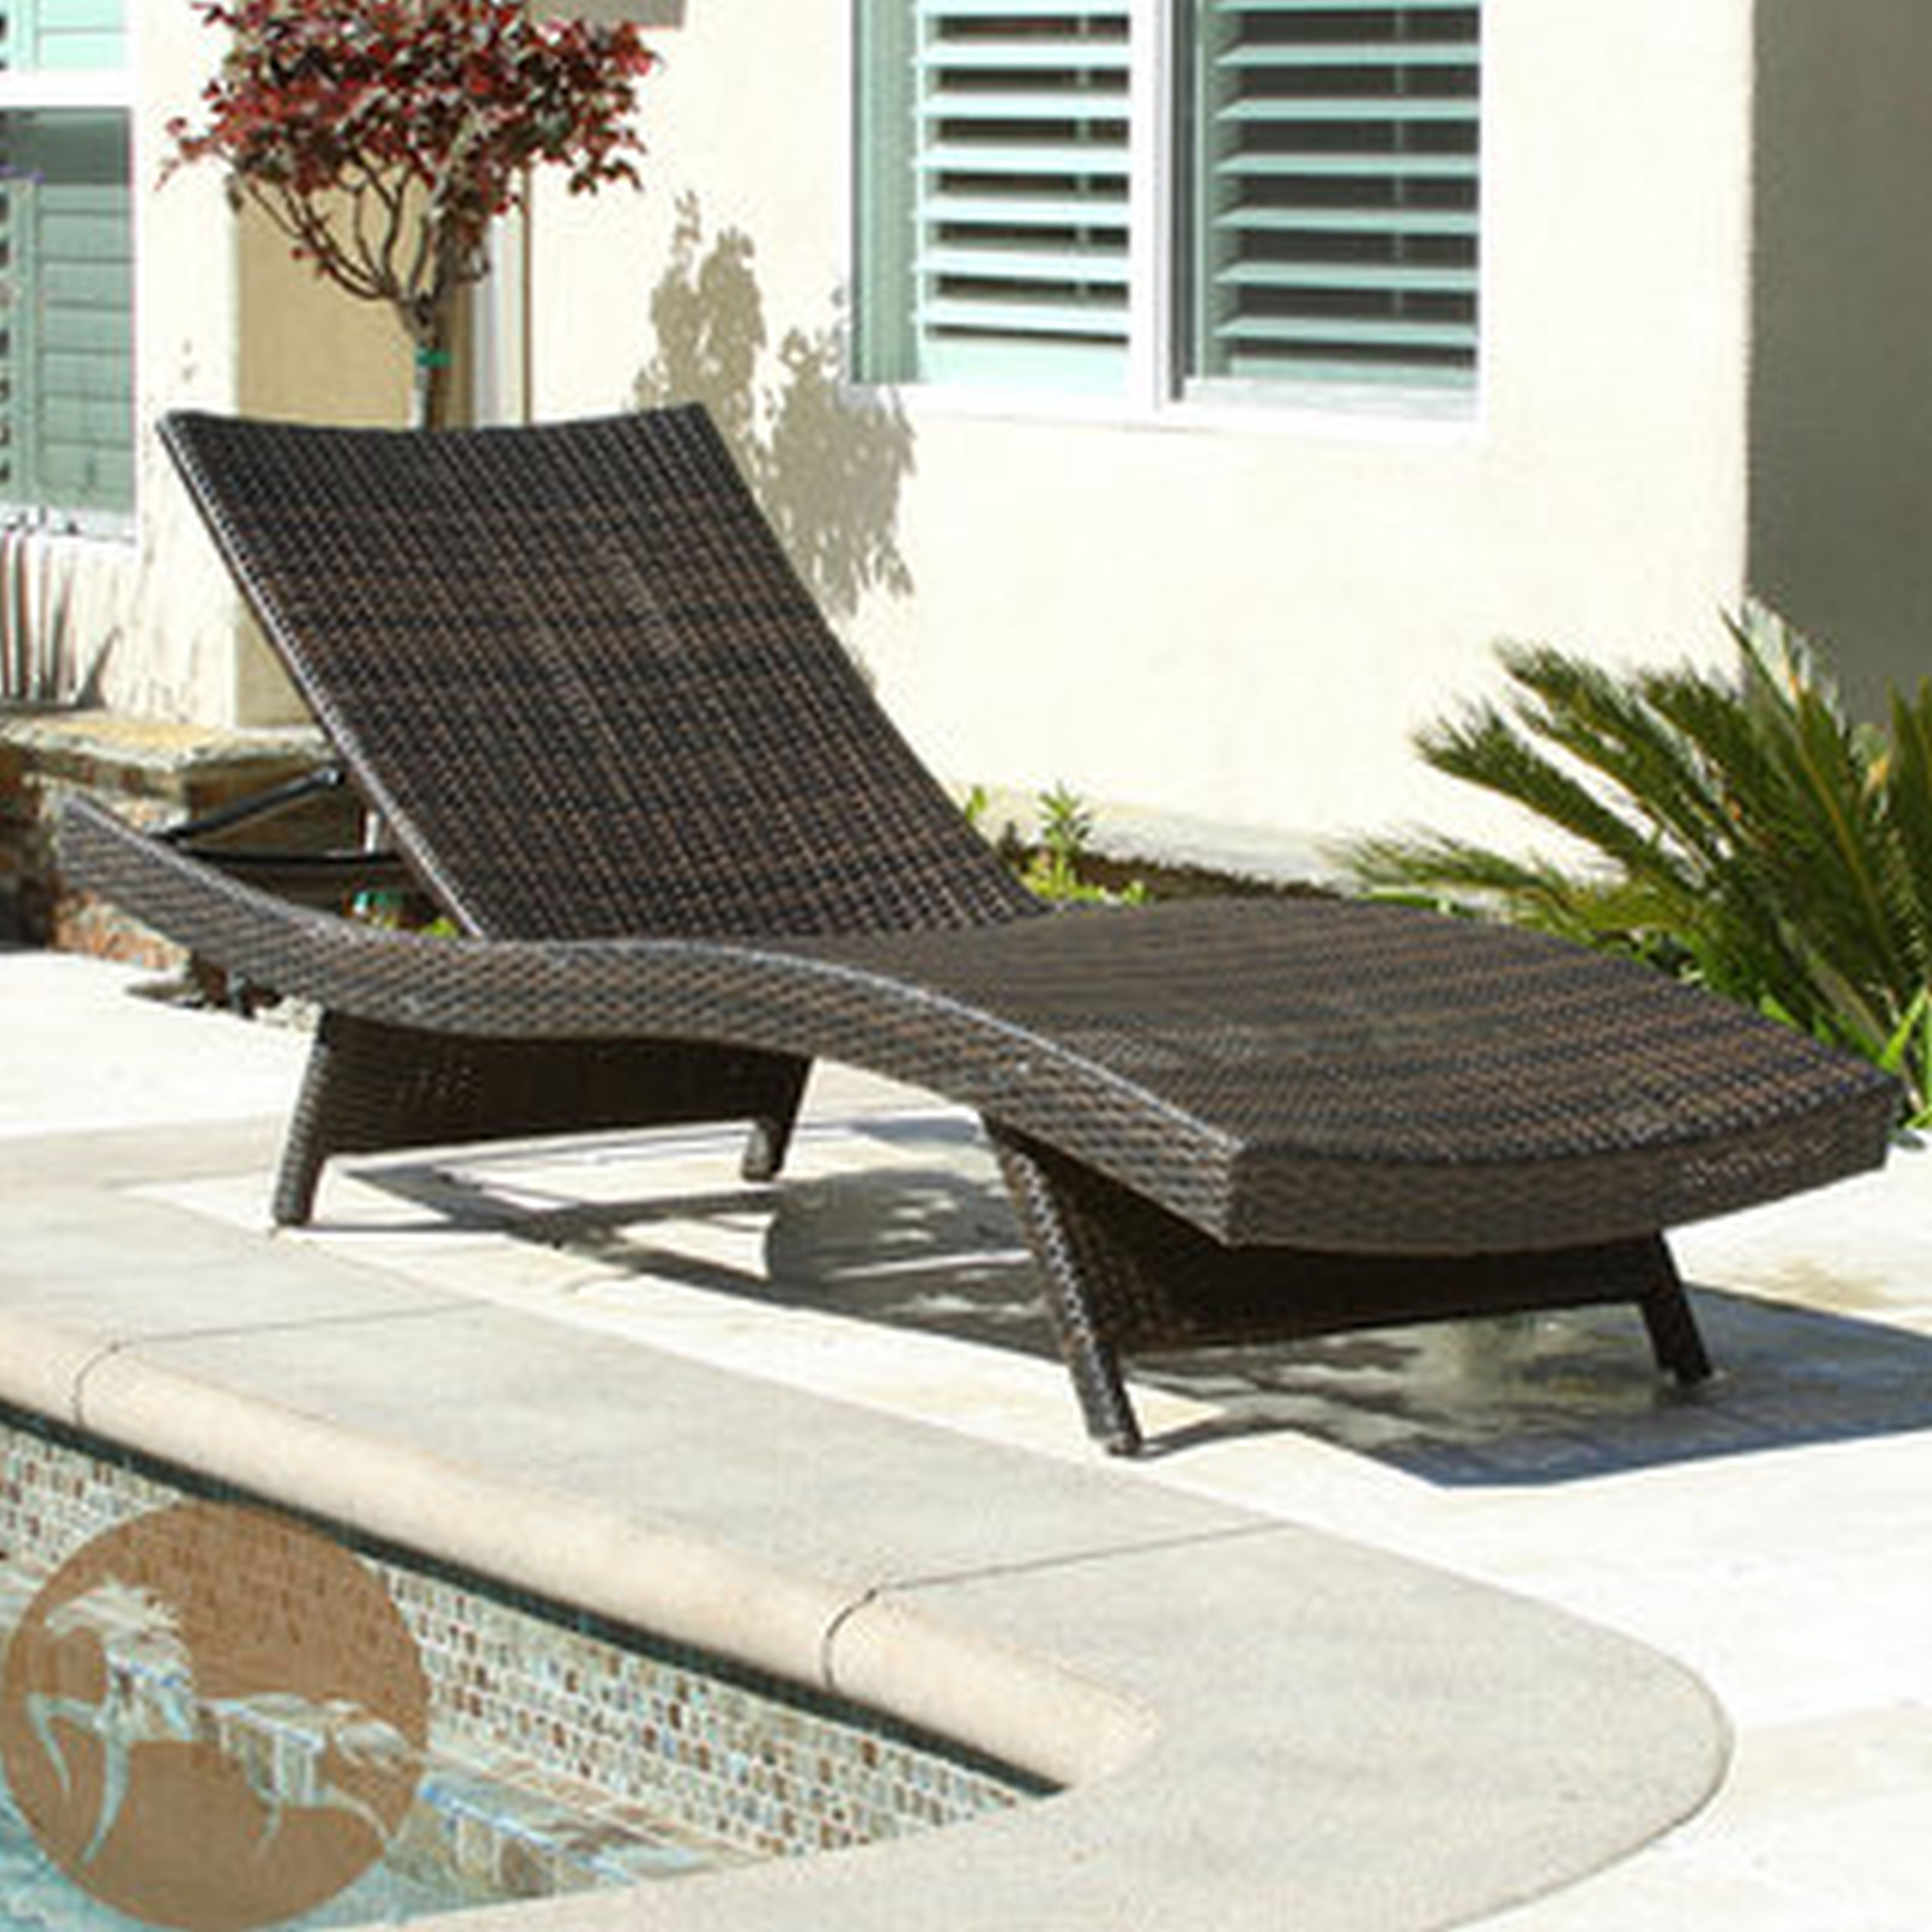 Outdoor : Patio Chaise Lounge Chairs Pool Lounge Chairs Chaise For Fashionable Outdoor Pool Chaise Lounge Chairs (View 5 of 15)